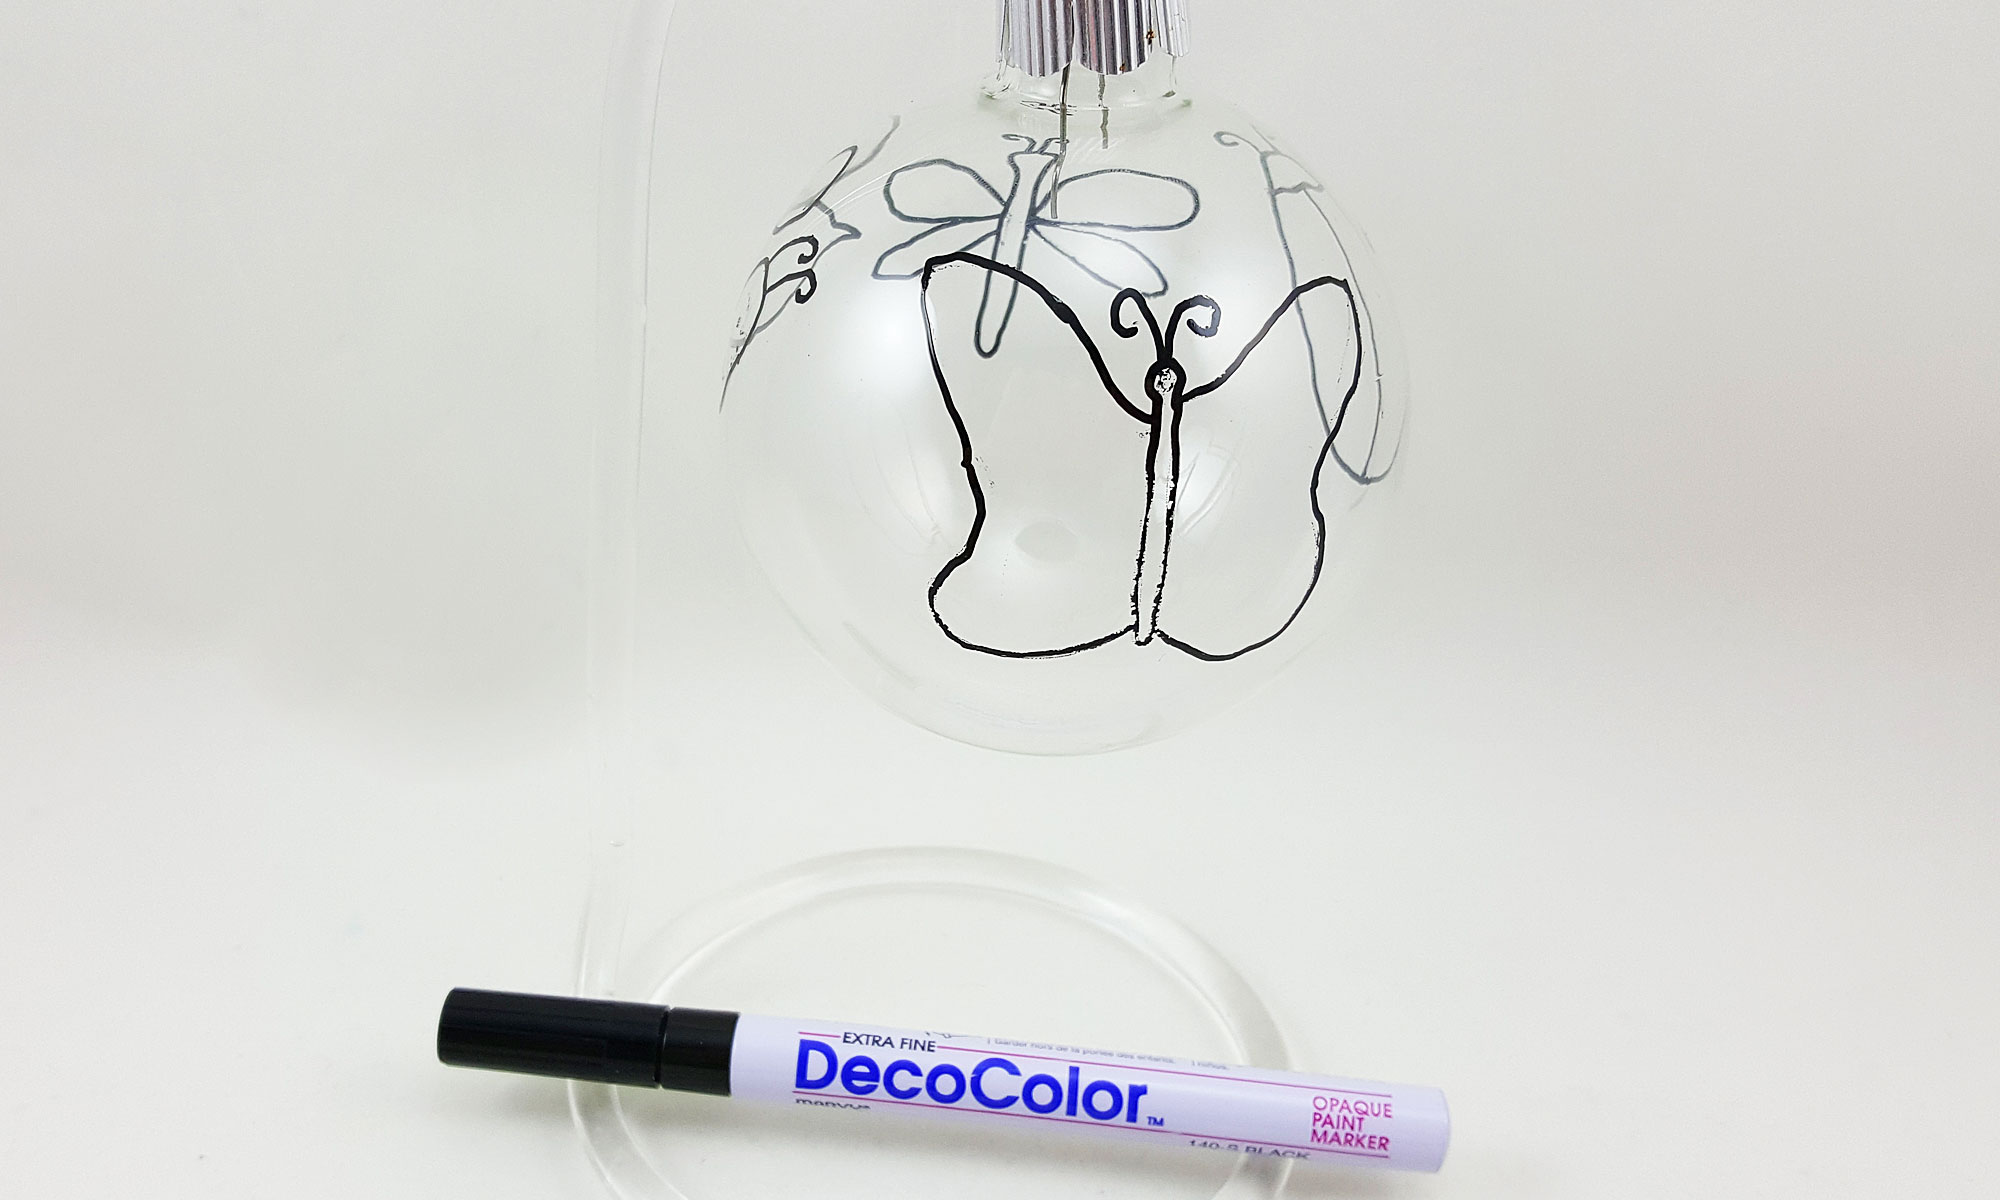 Step 1 is to outline your mosaic shapes on the clear class ball ornament | OrnamentShop.com